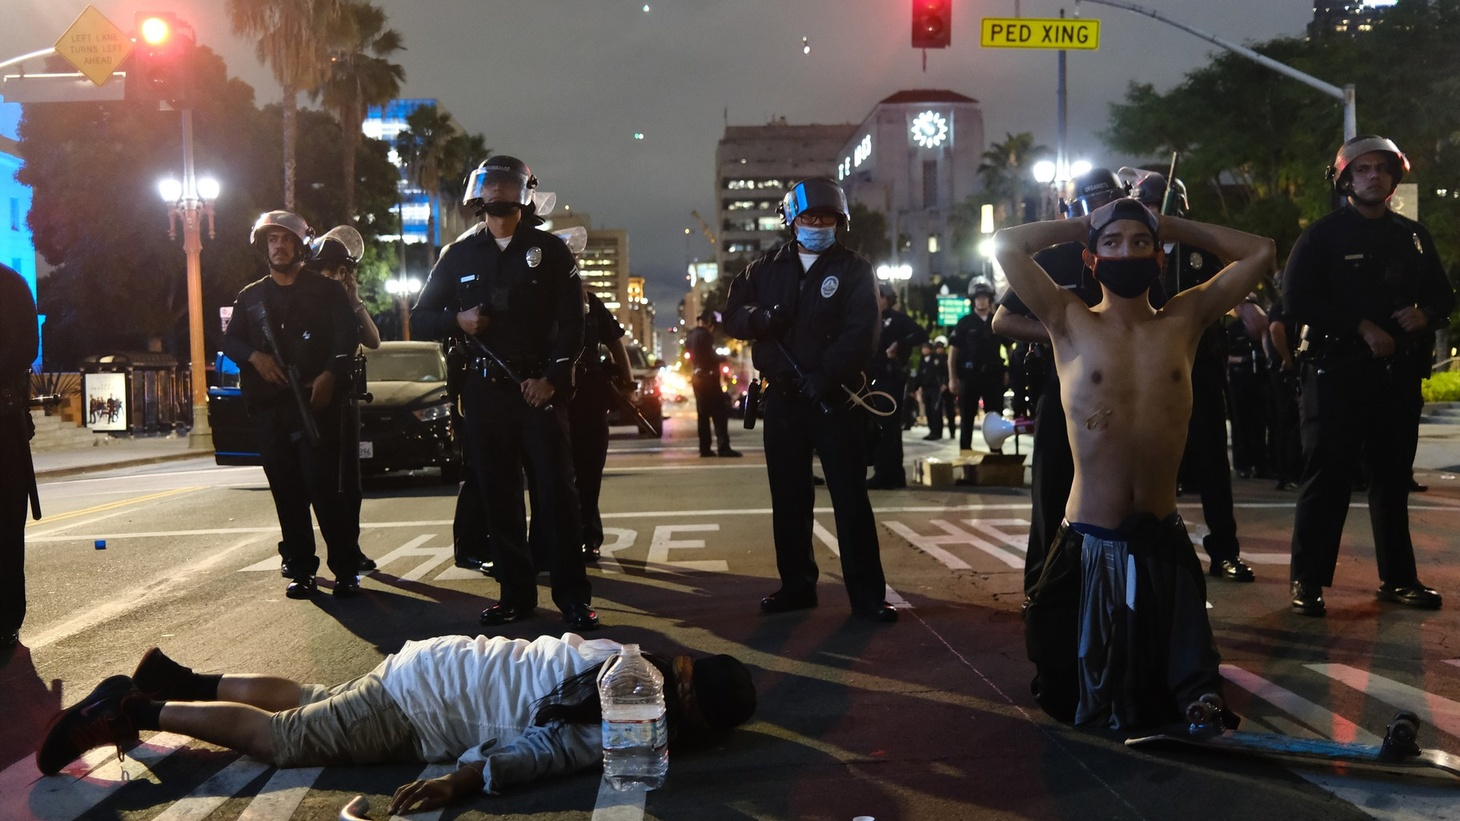 LAPD officers boxed-in demonstrators who laid on the street in protest.